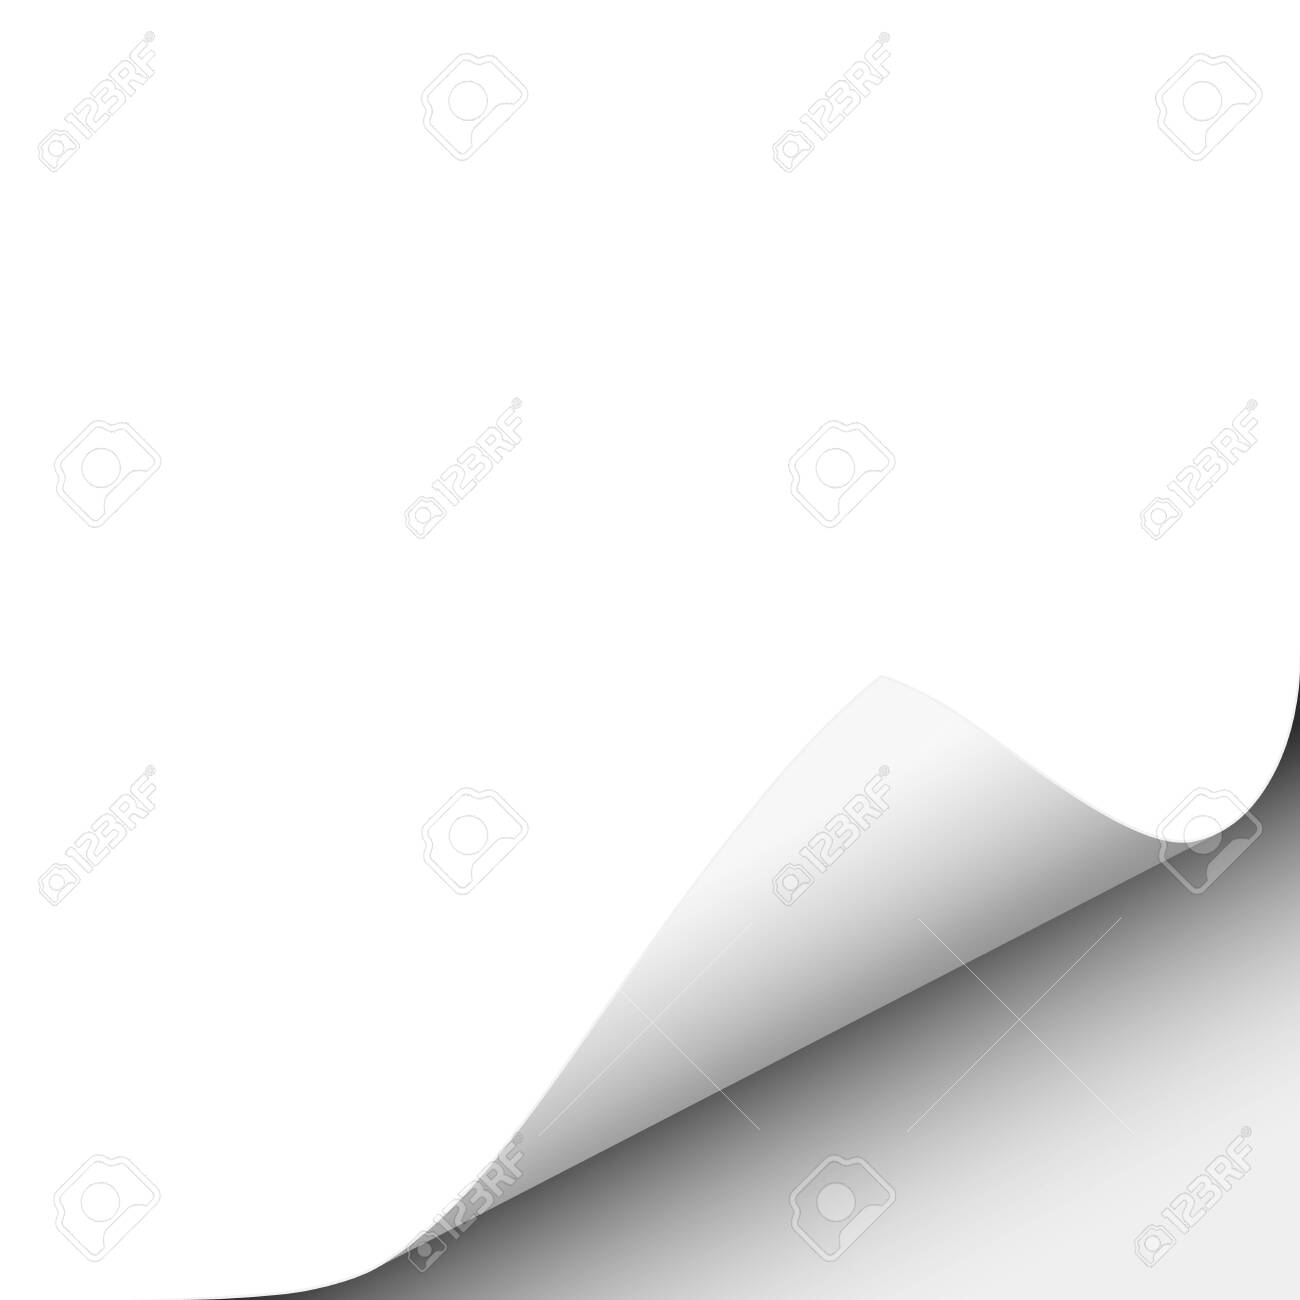 Vector lower right curl of corner of white sheet of paper. - 149143739